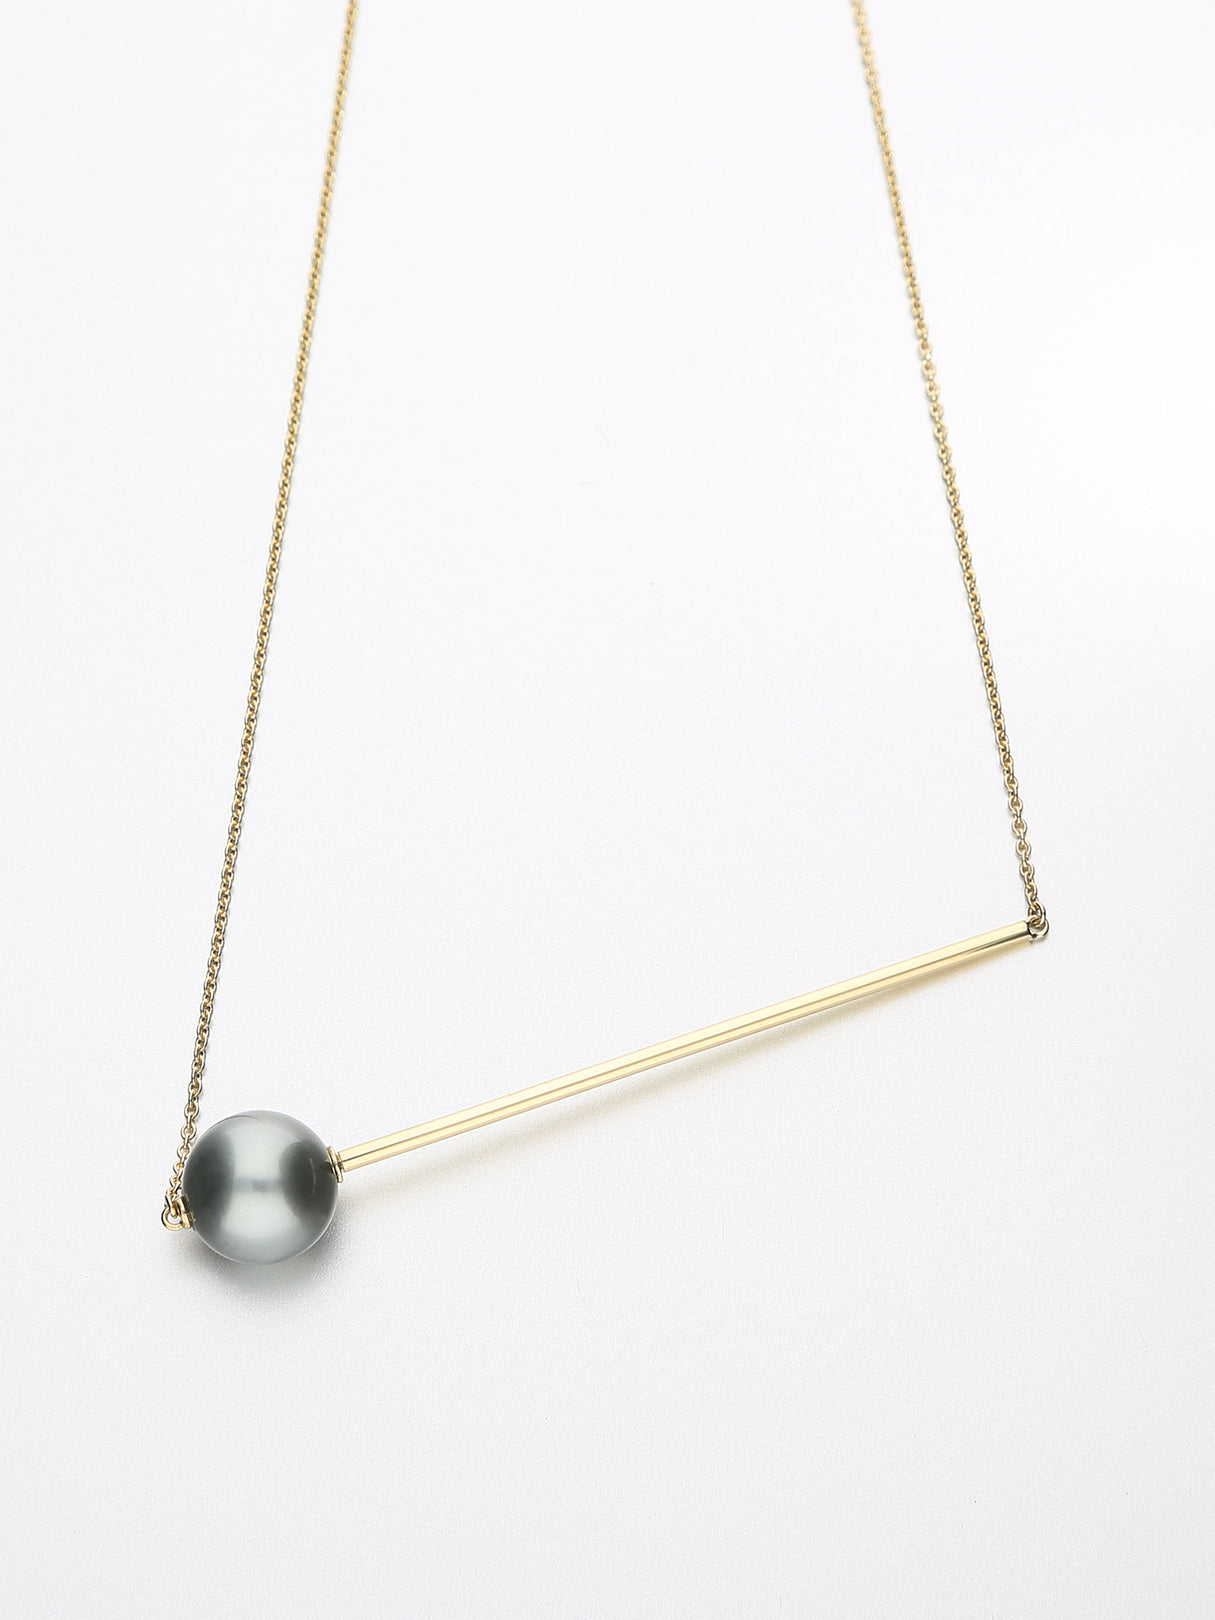 Abacus Pearl Necklace, Yellow gold with dark Tahitian pearl 11mm